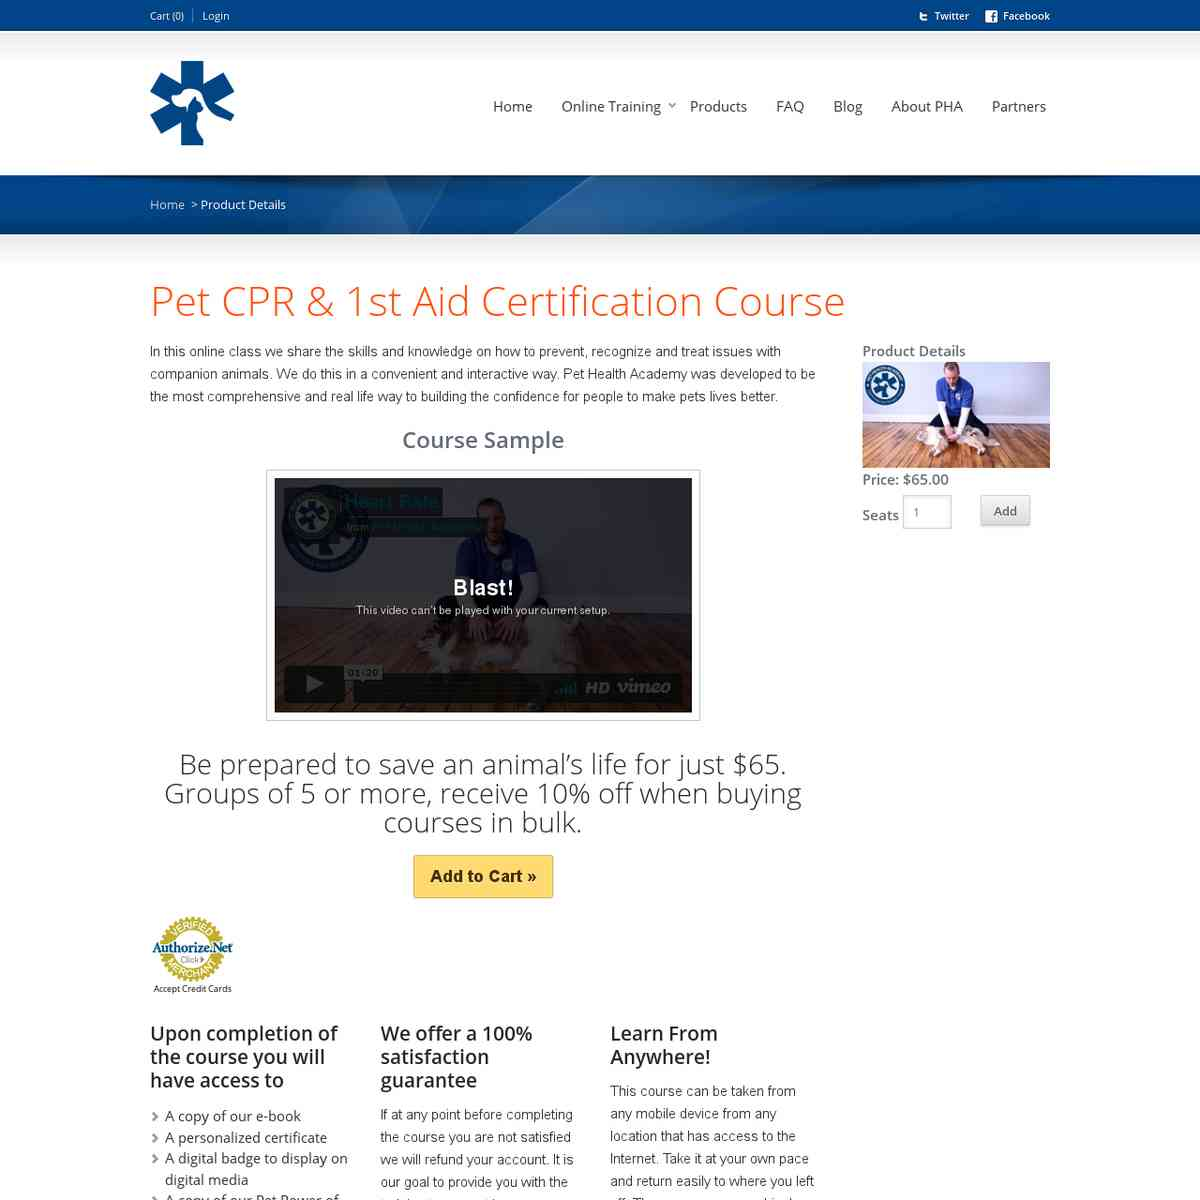 Pet CPR & 1st Aid Certification